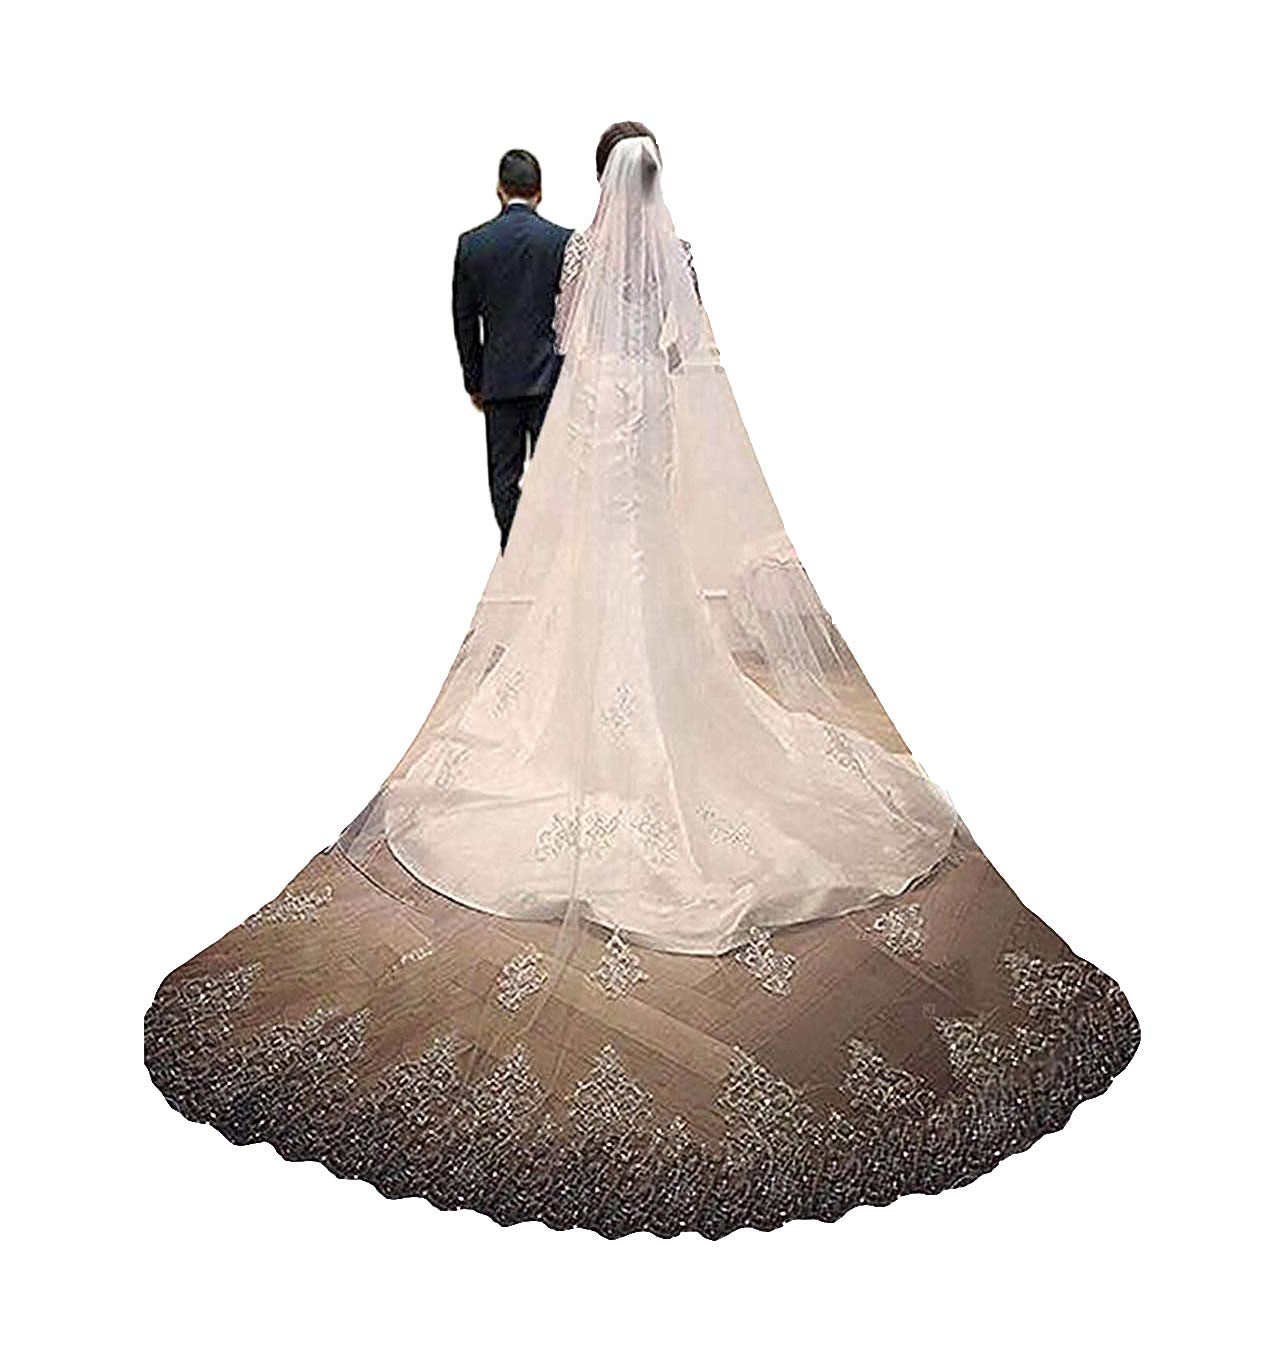 Kelaixiang Wedding Veils with Shinning Beads Sequins Cathedral Bridal Veils Comb (Ivory), 1.5M Wide by Kelaixiang